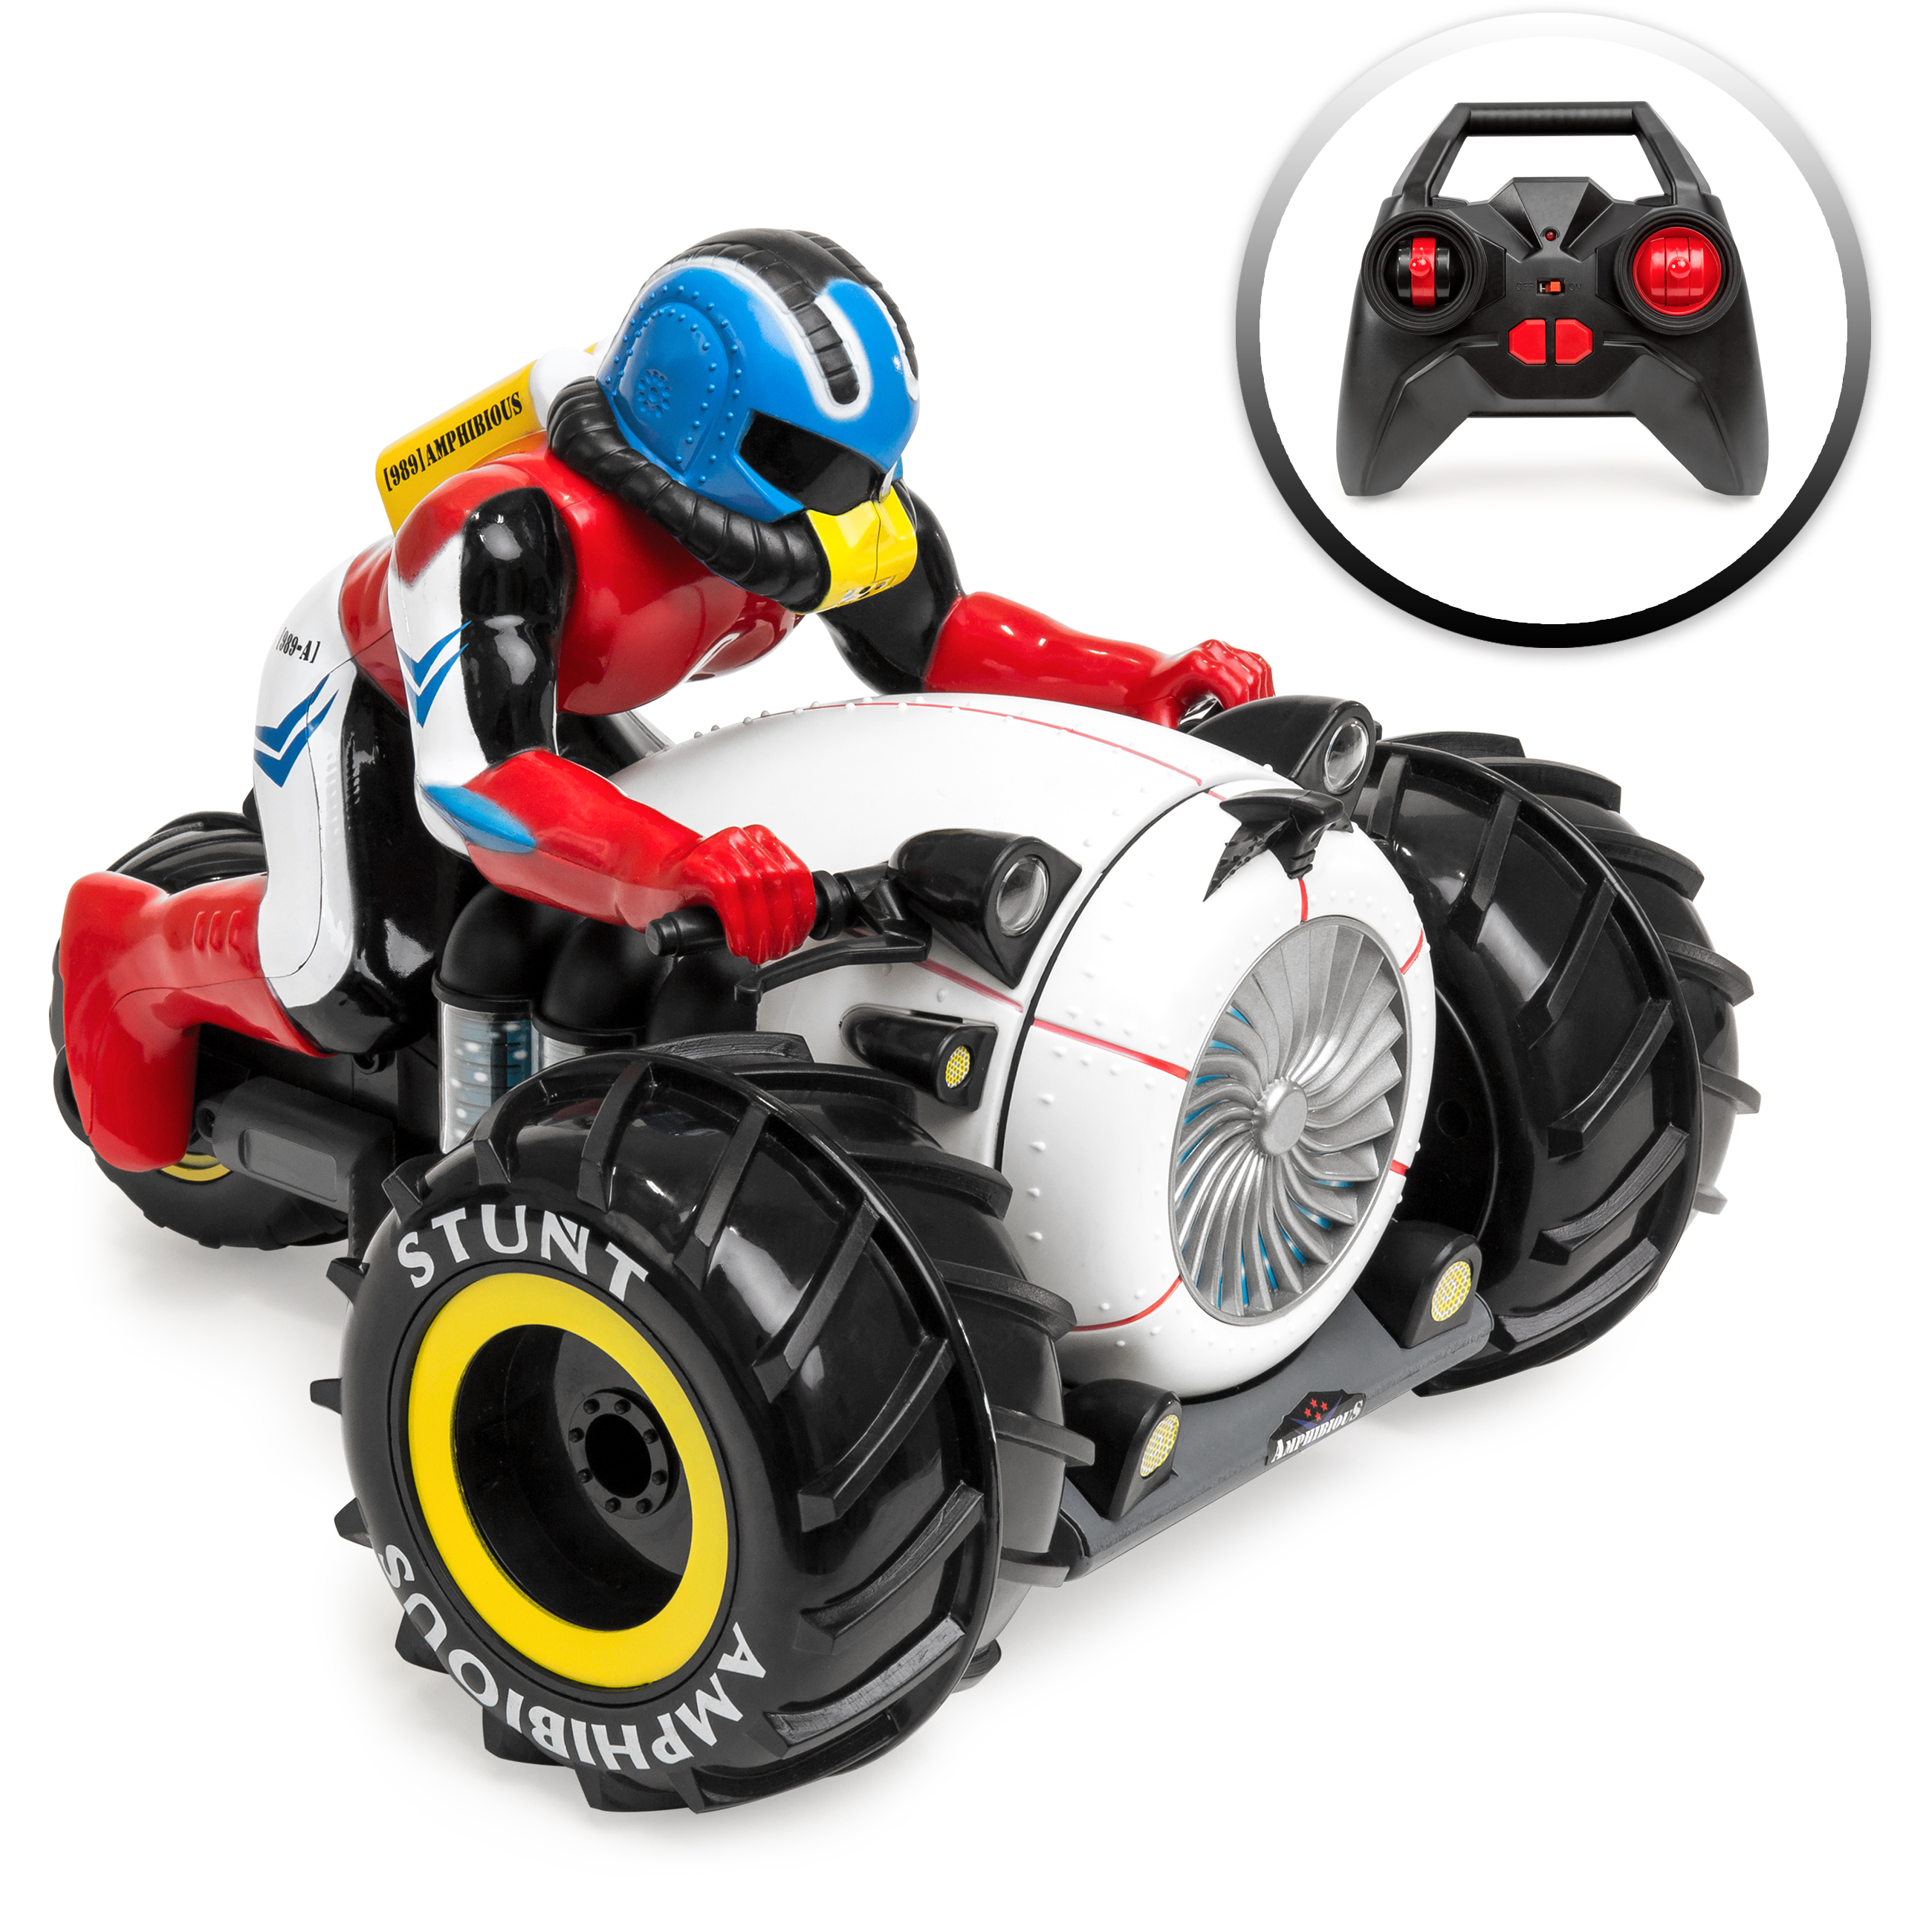 Best Choice Products Kids Remote Control Stunt Motorcycle Toy for Land, Water, Snow Play w/ All-Terrain Wheels - Mutli